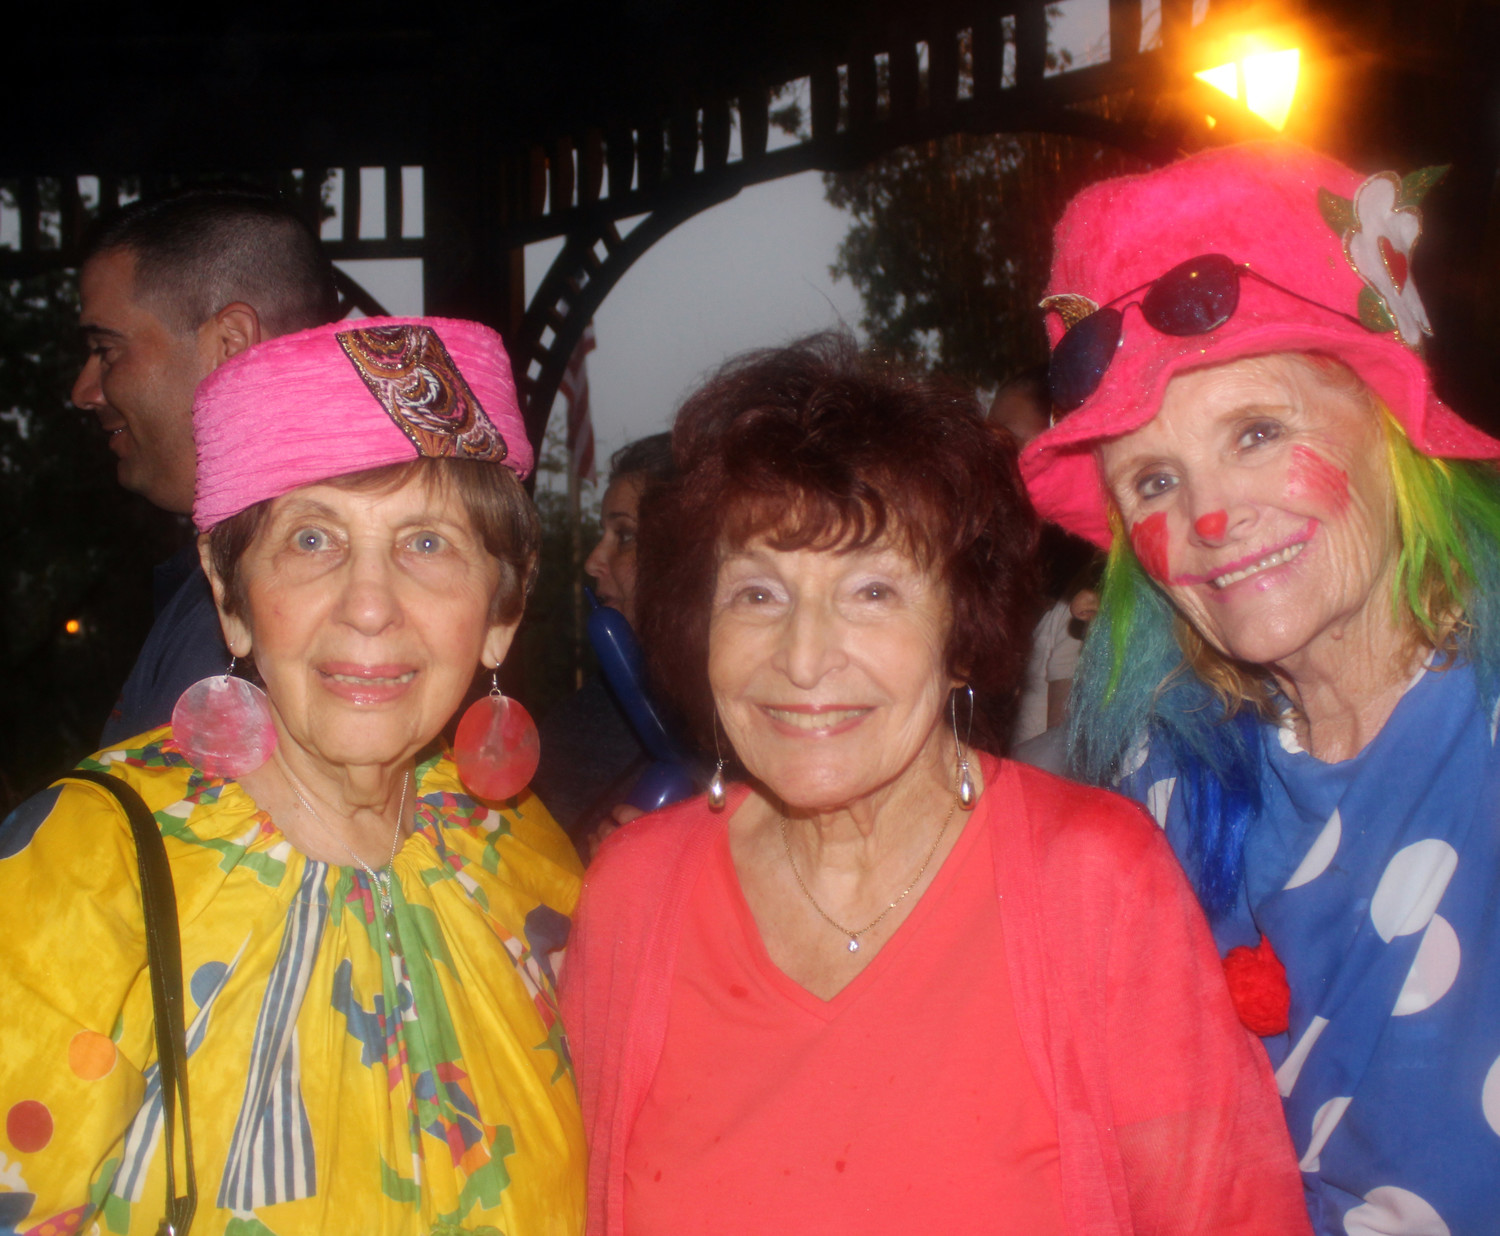 Norma Gonsalves, center, said that the night wouldn't be complete without two dedicated clowns Betty Tucker, left, and Patty Tropea.